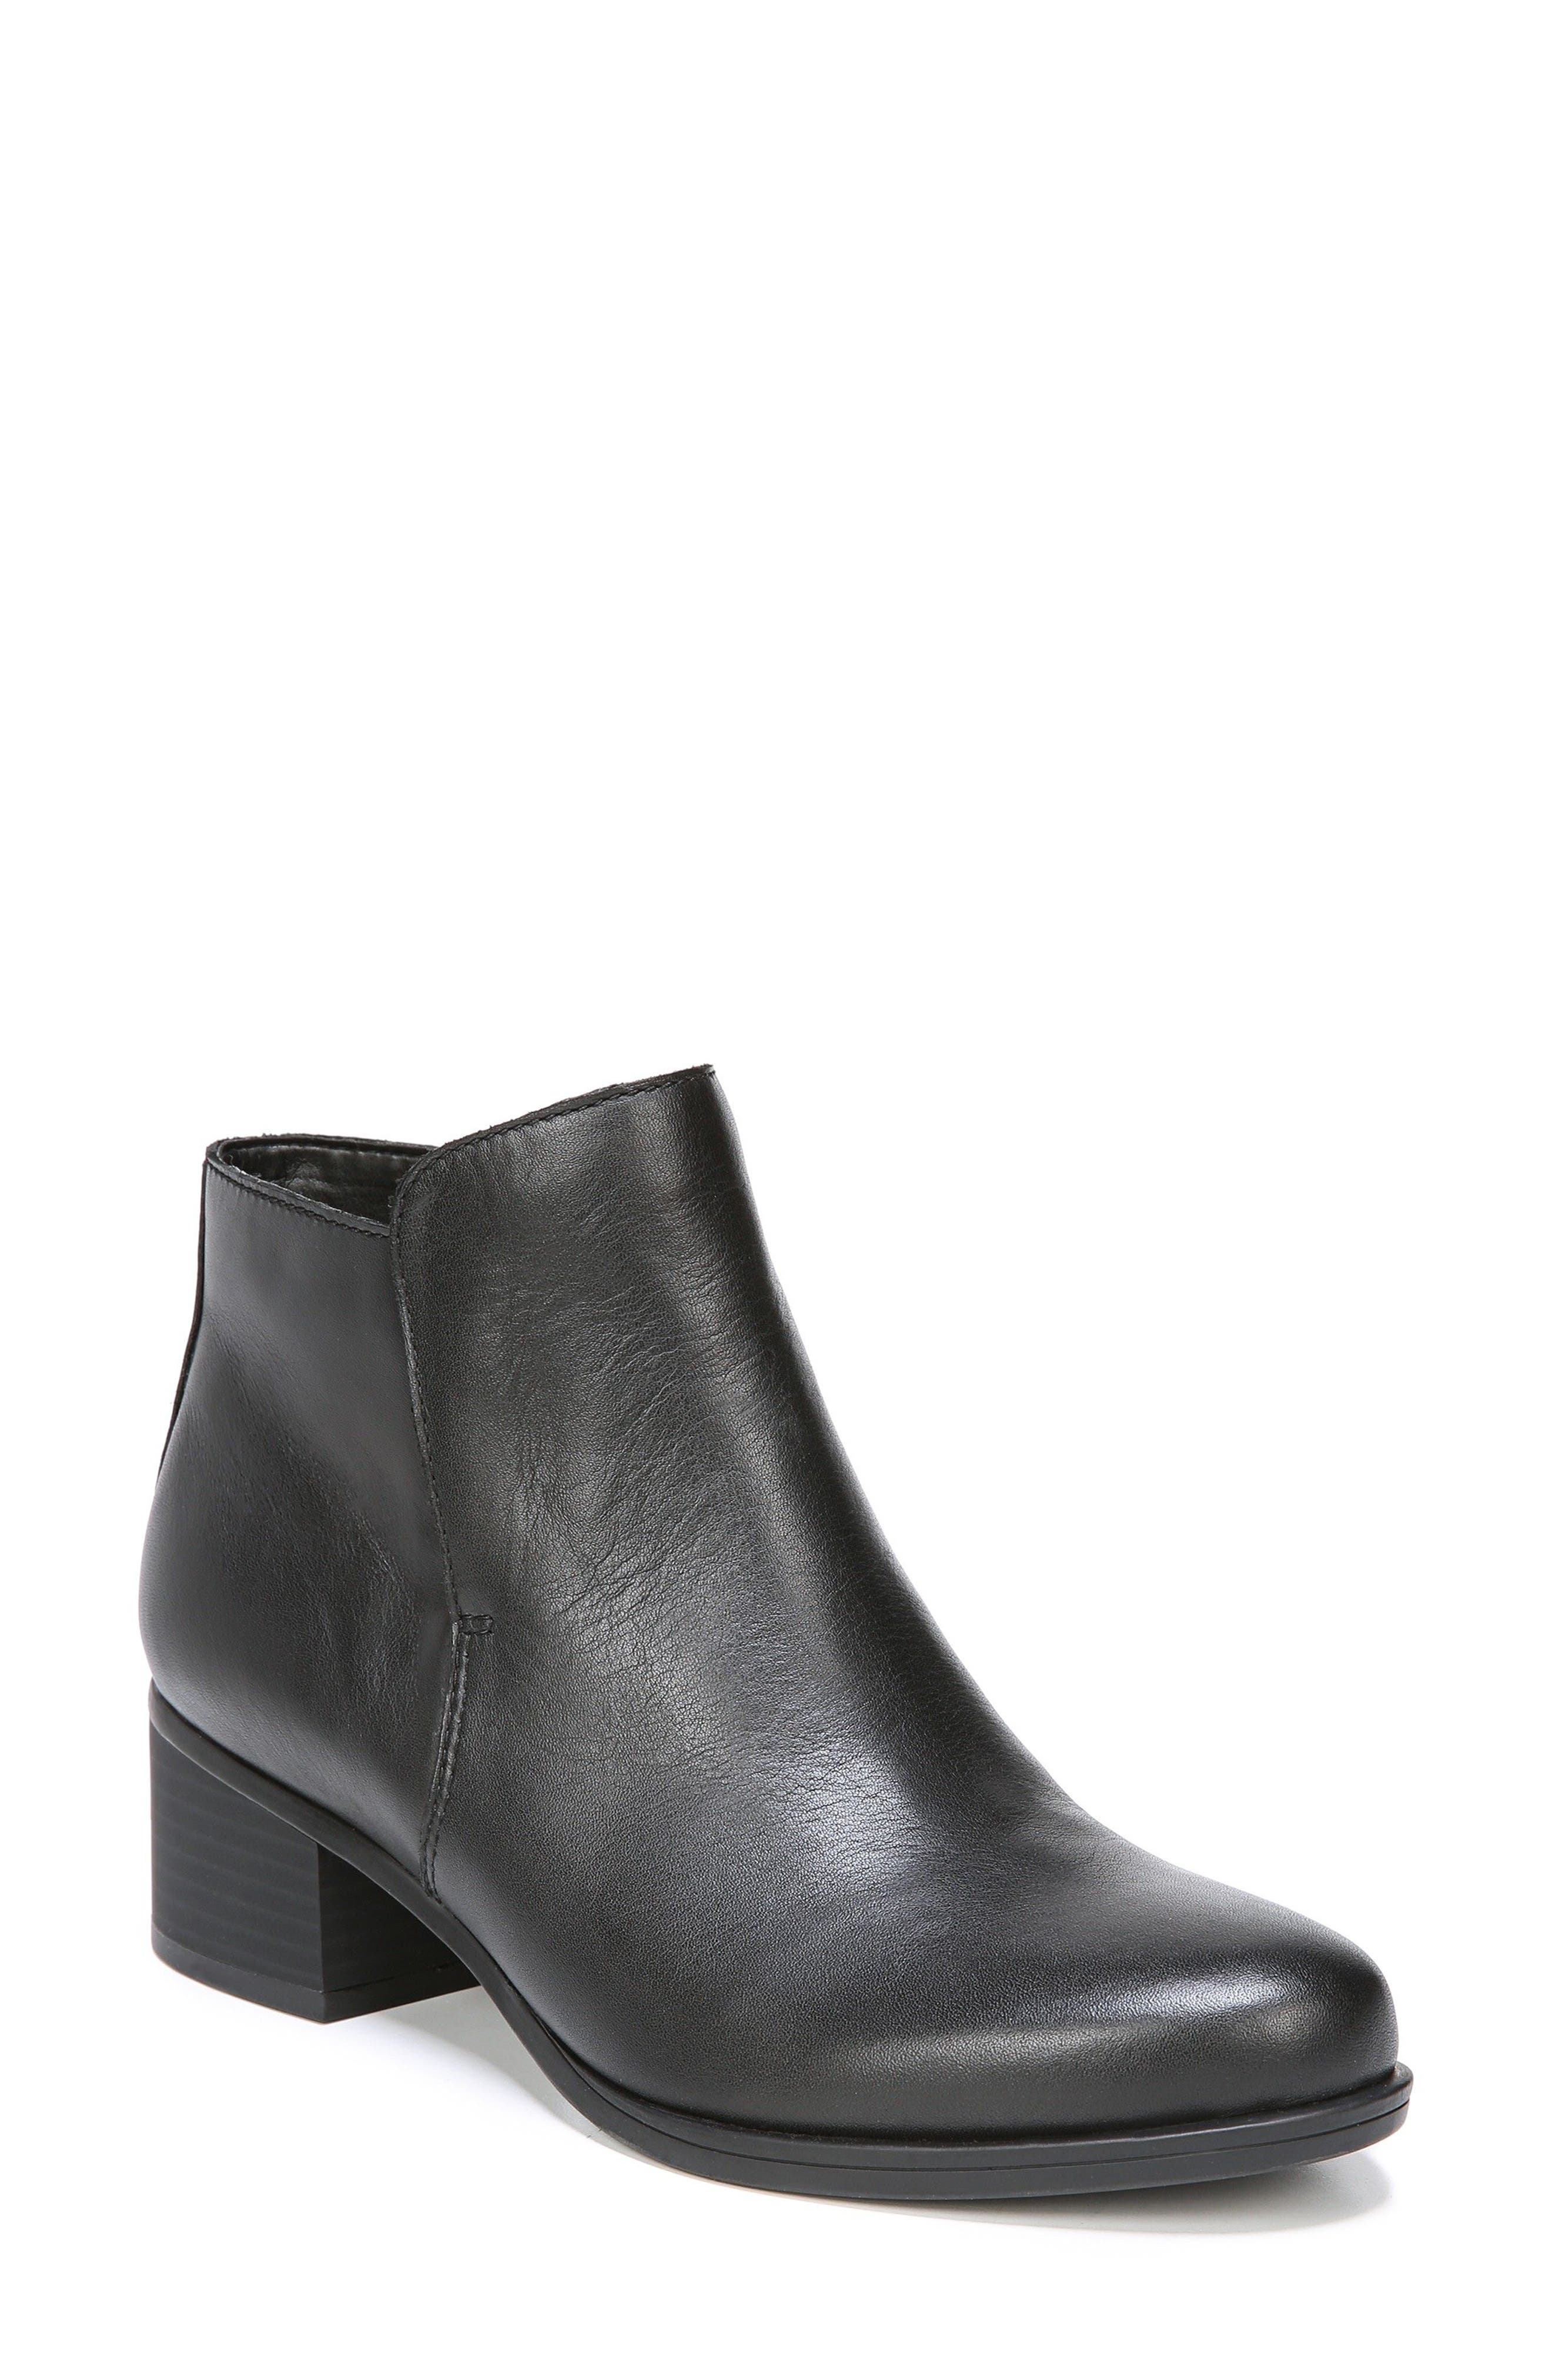 Dawson Waterproof Bootie,                         Main,                         color, Black Leather